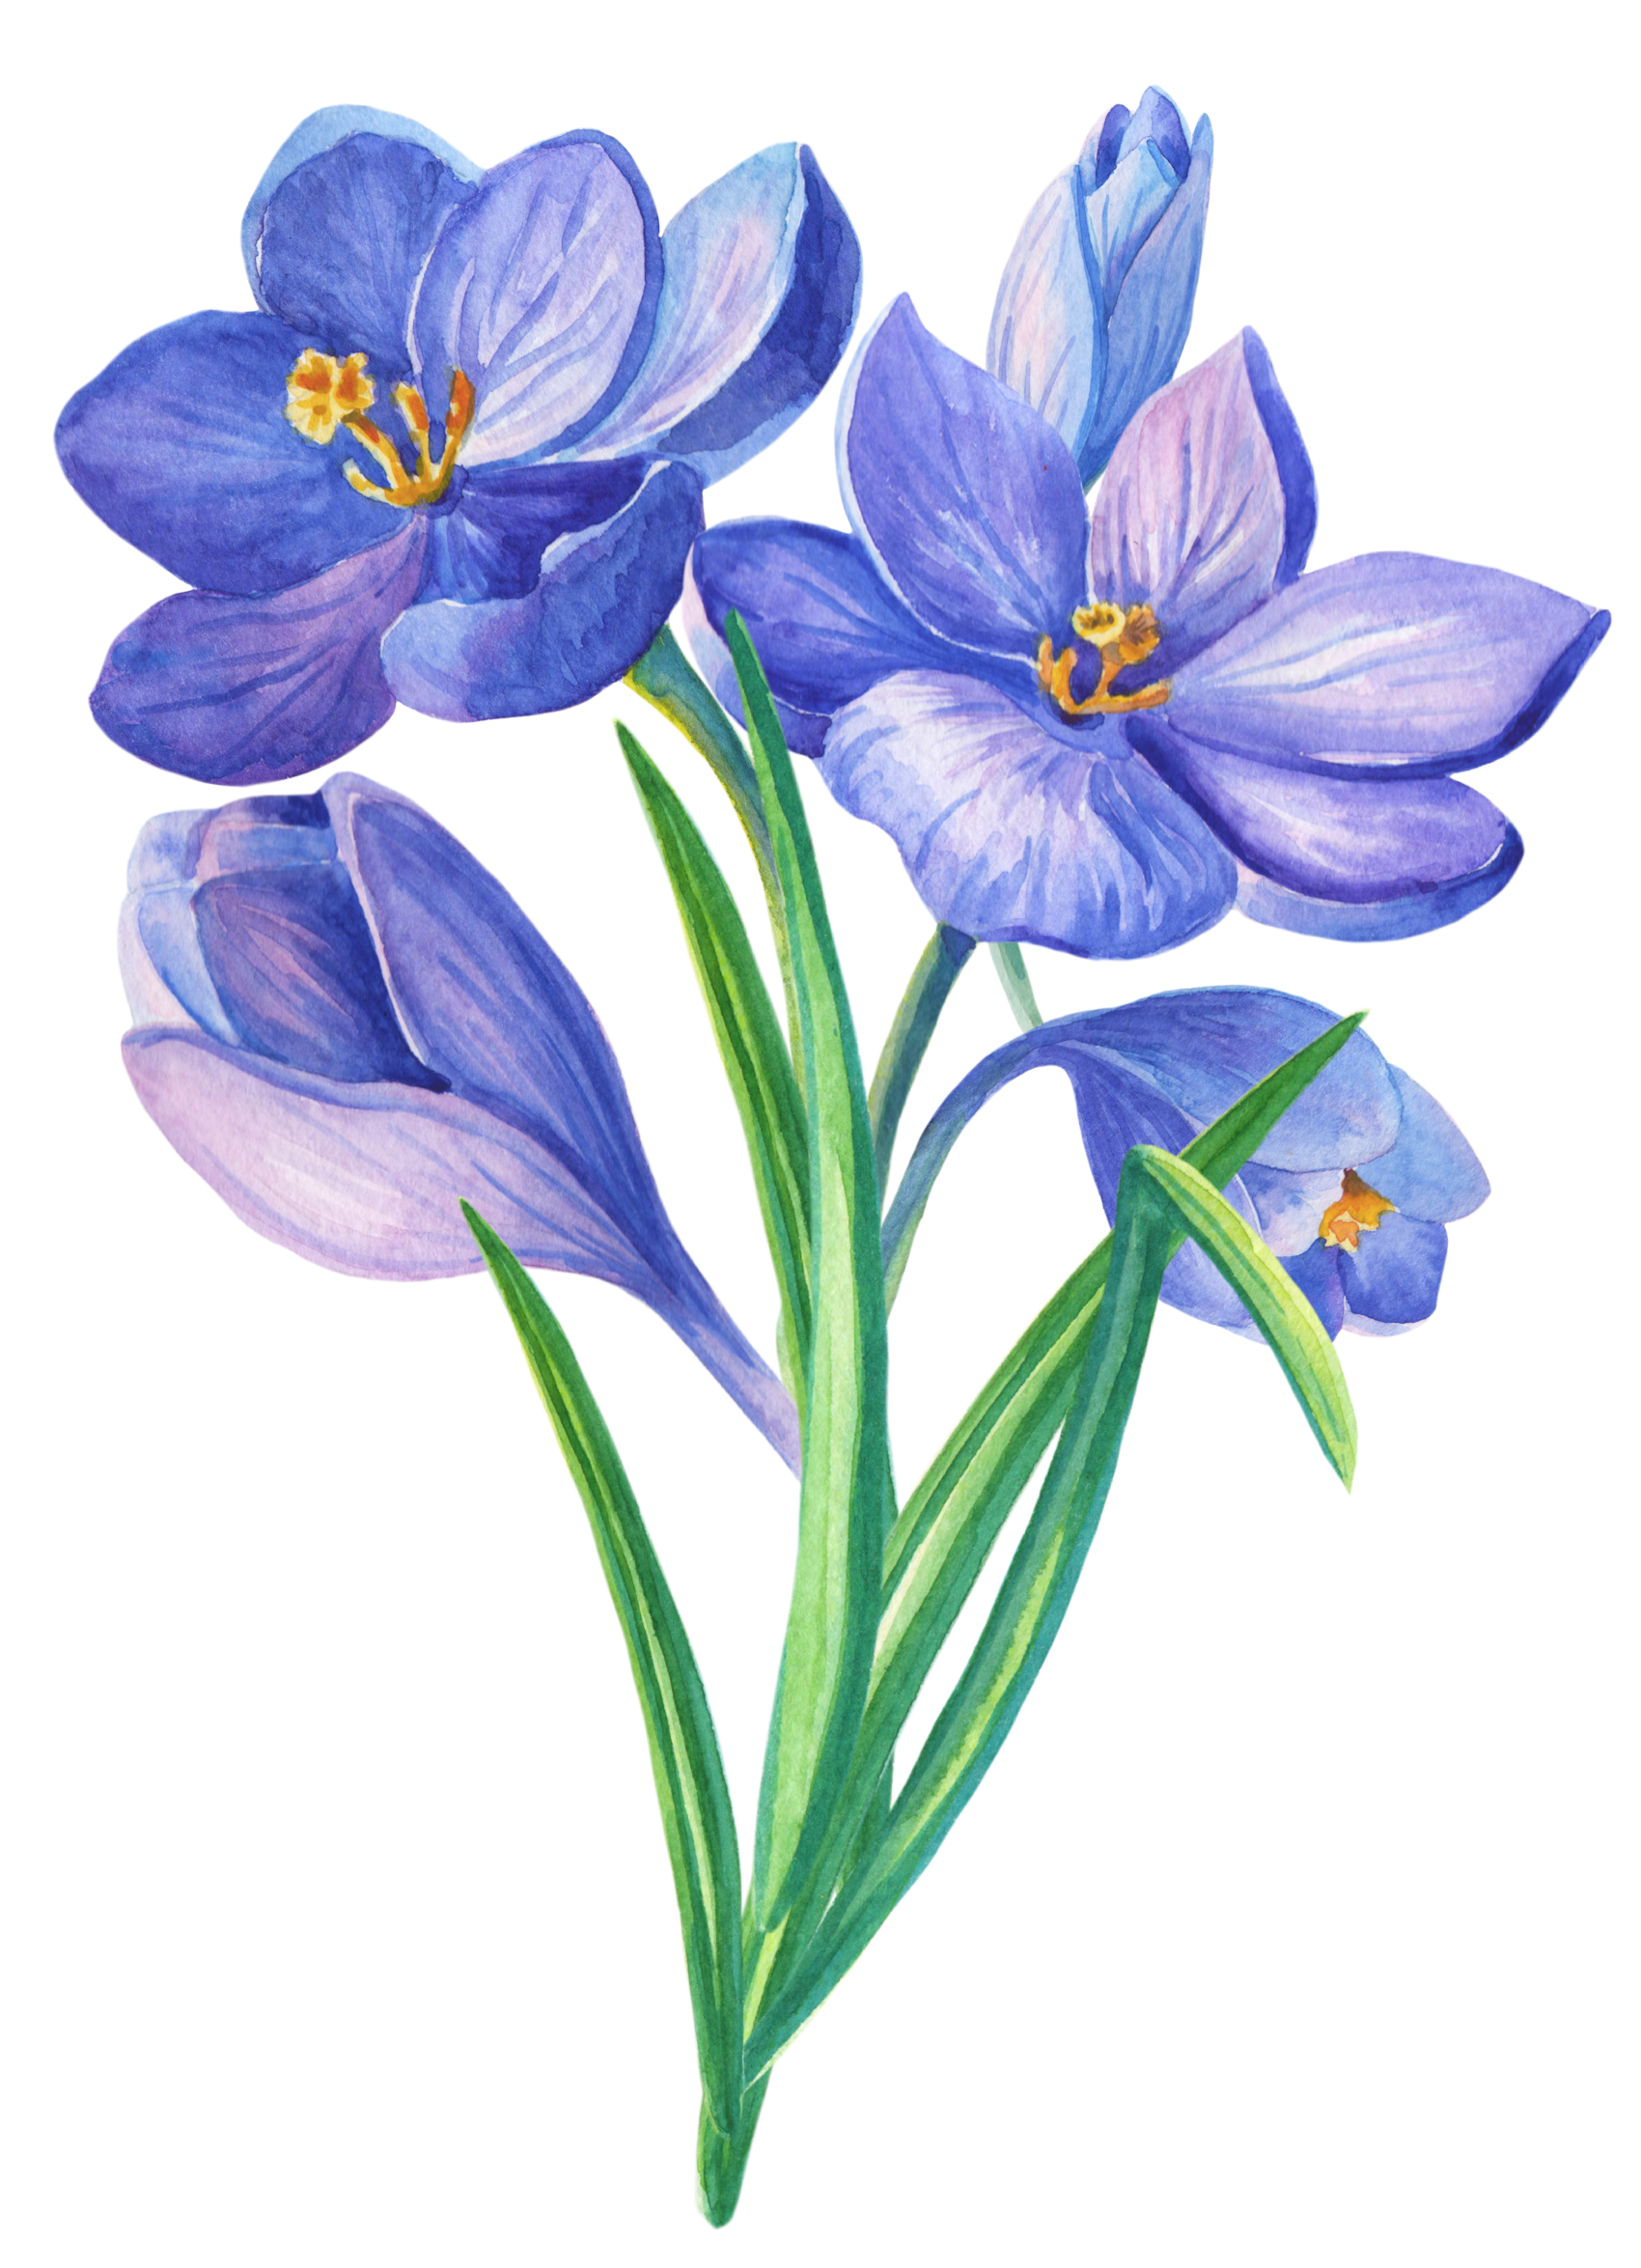 Pin by edlmagdi on. Daffodil clipart trumpet flower